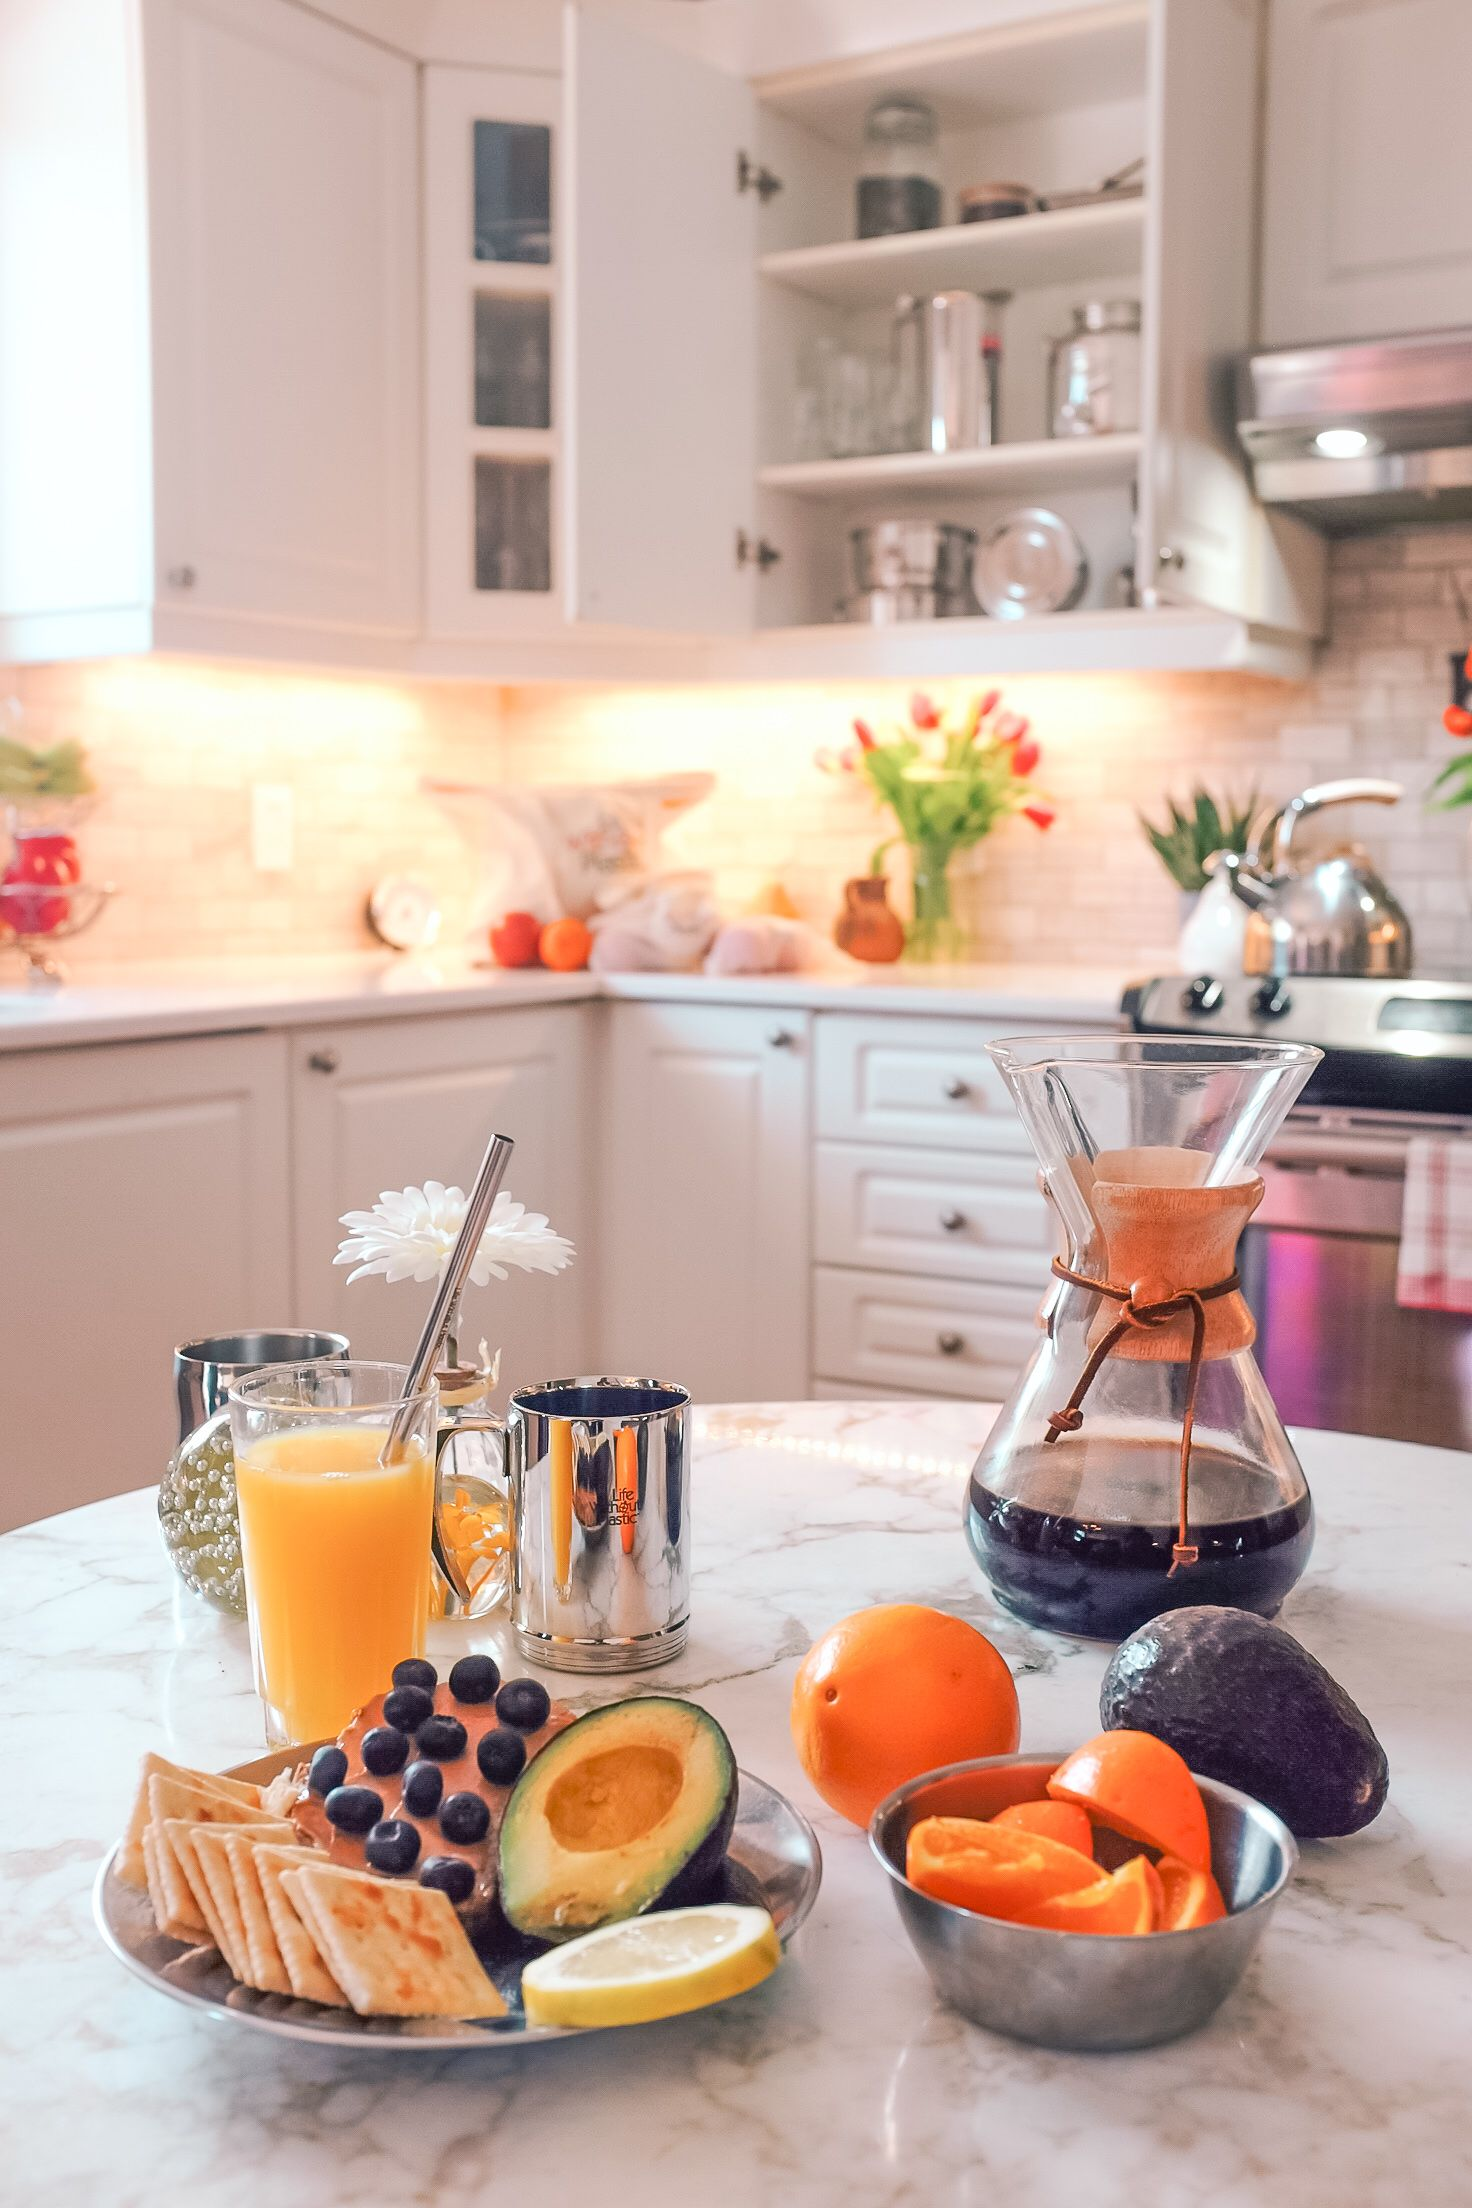 welcome to our life without plastic kitchen dreaming that one day my kitchen can look and feel on zero waste kitchen interior id=20926